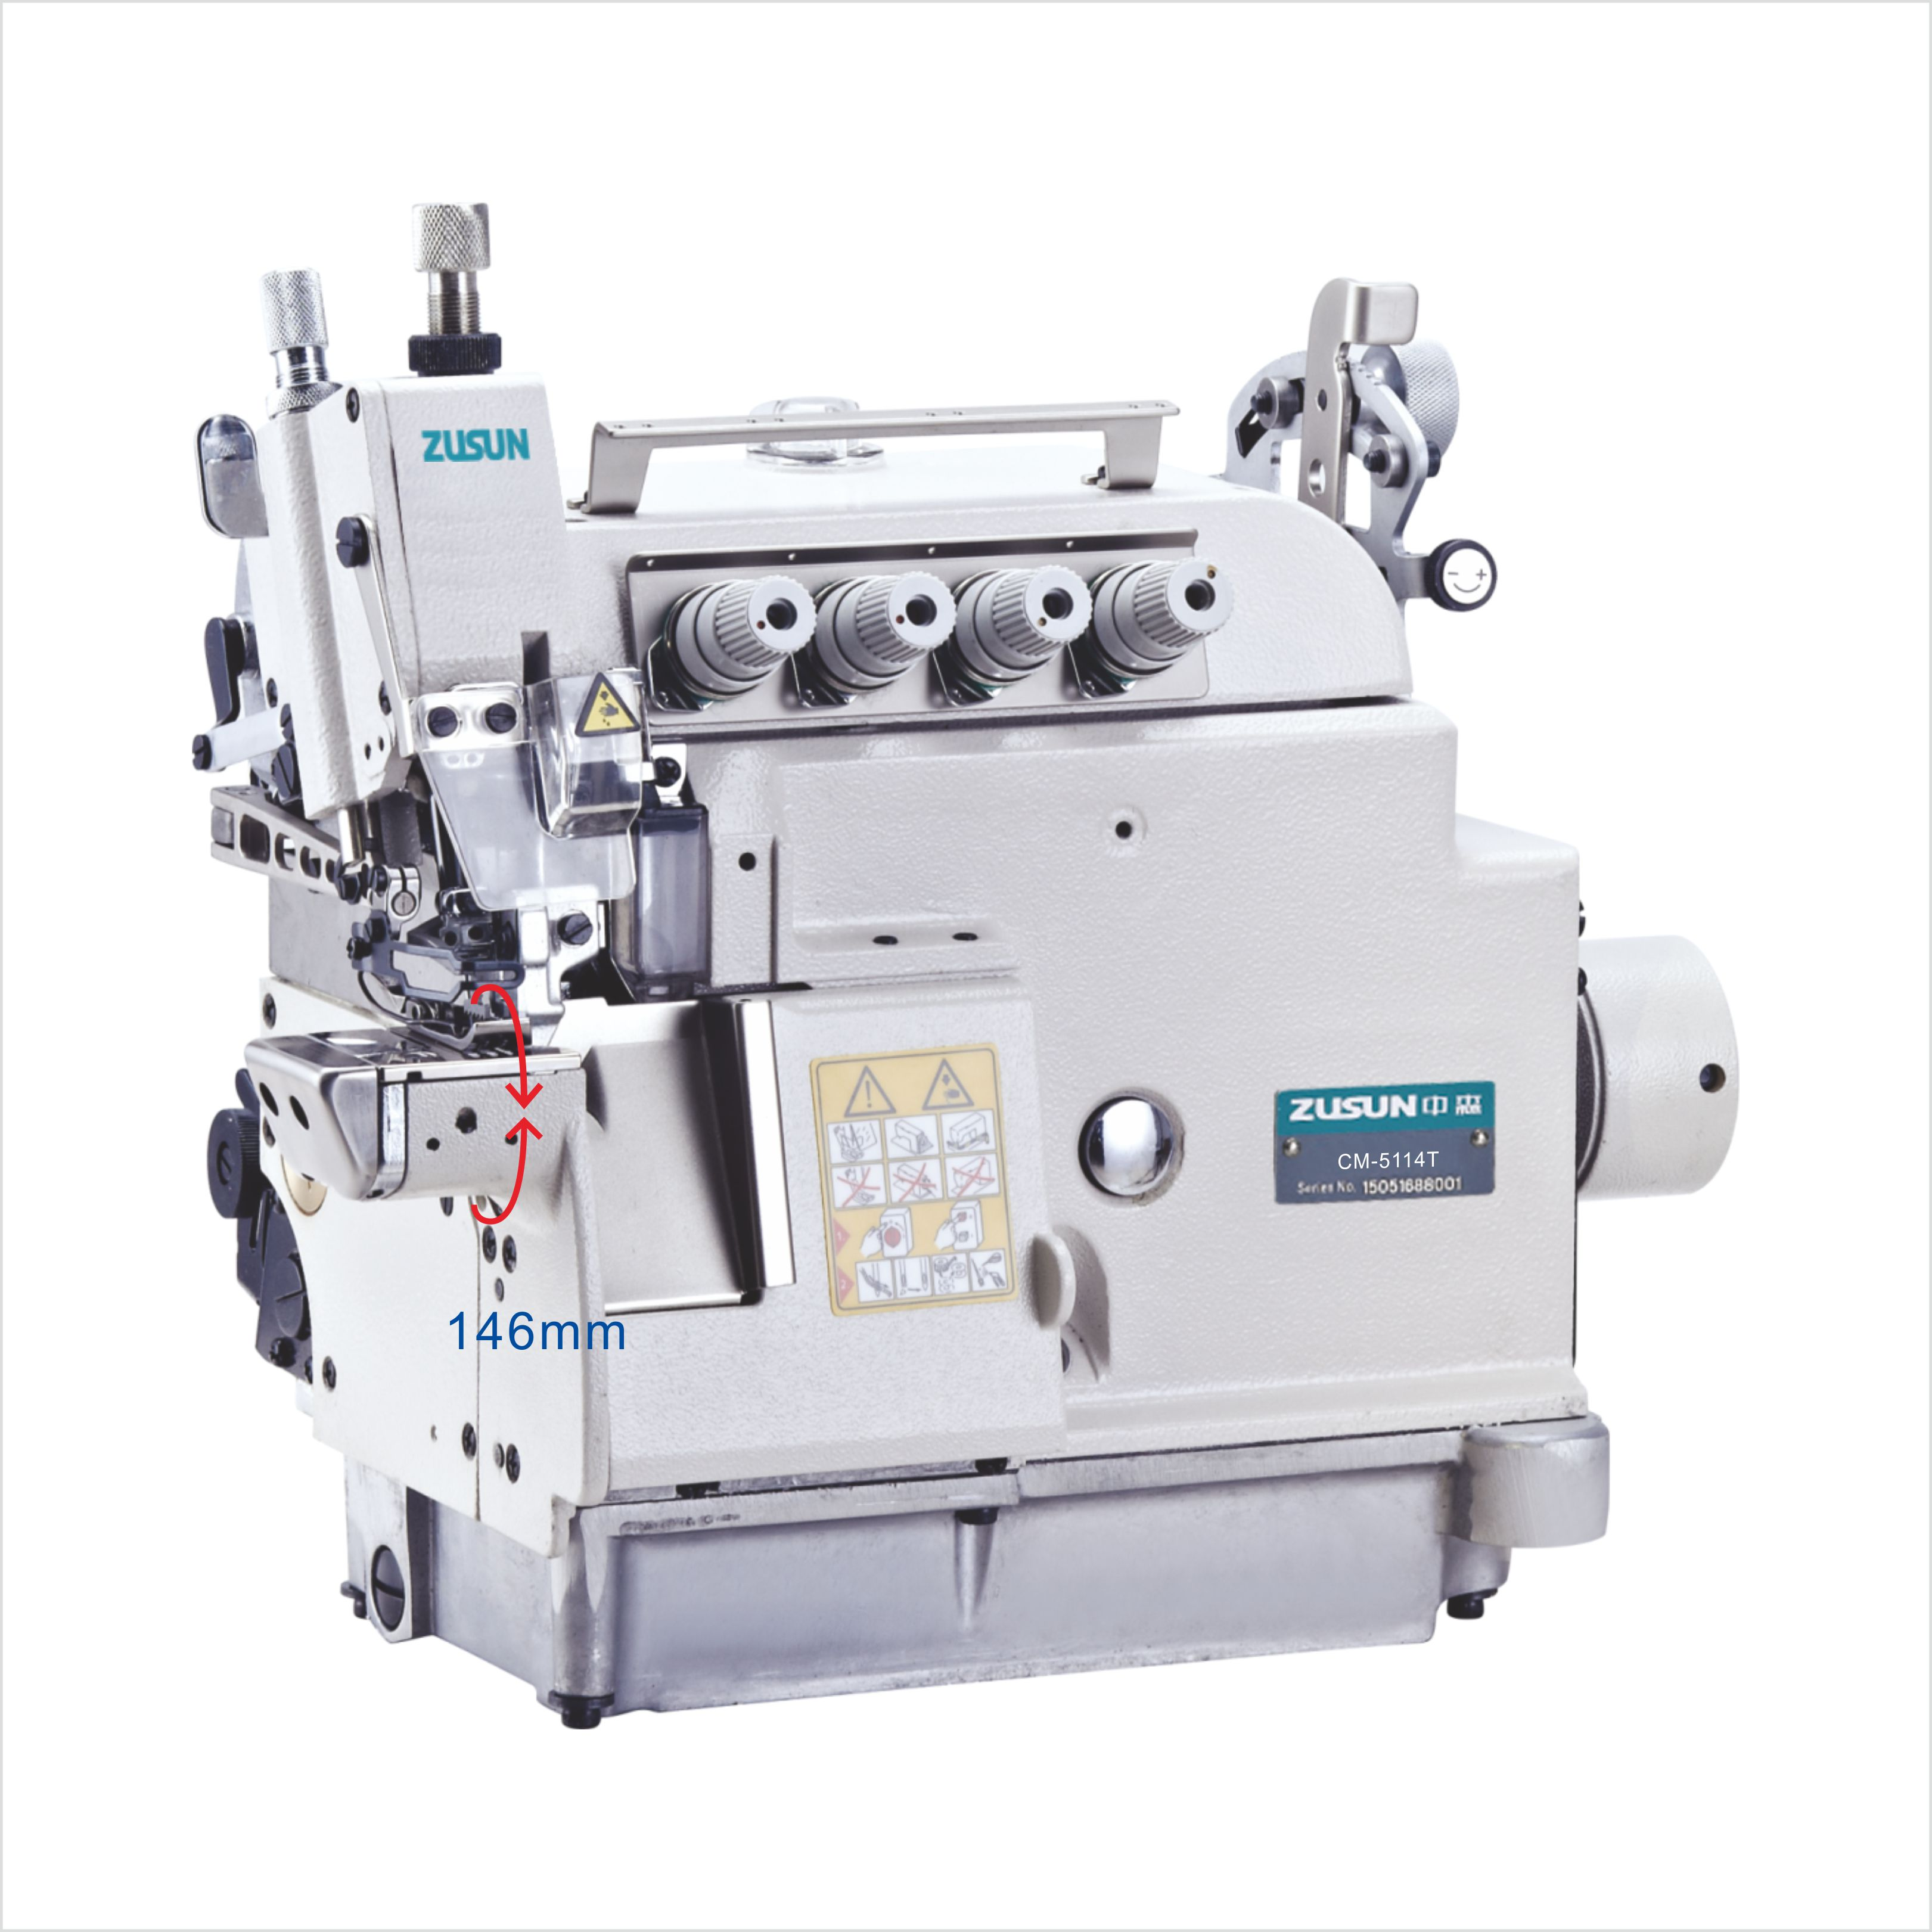 Small cylinder bed overlock machine with variable top feed